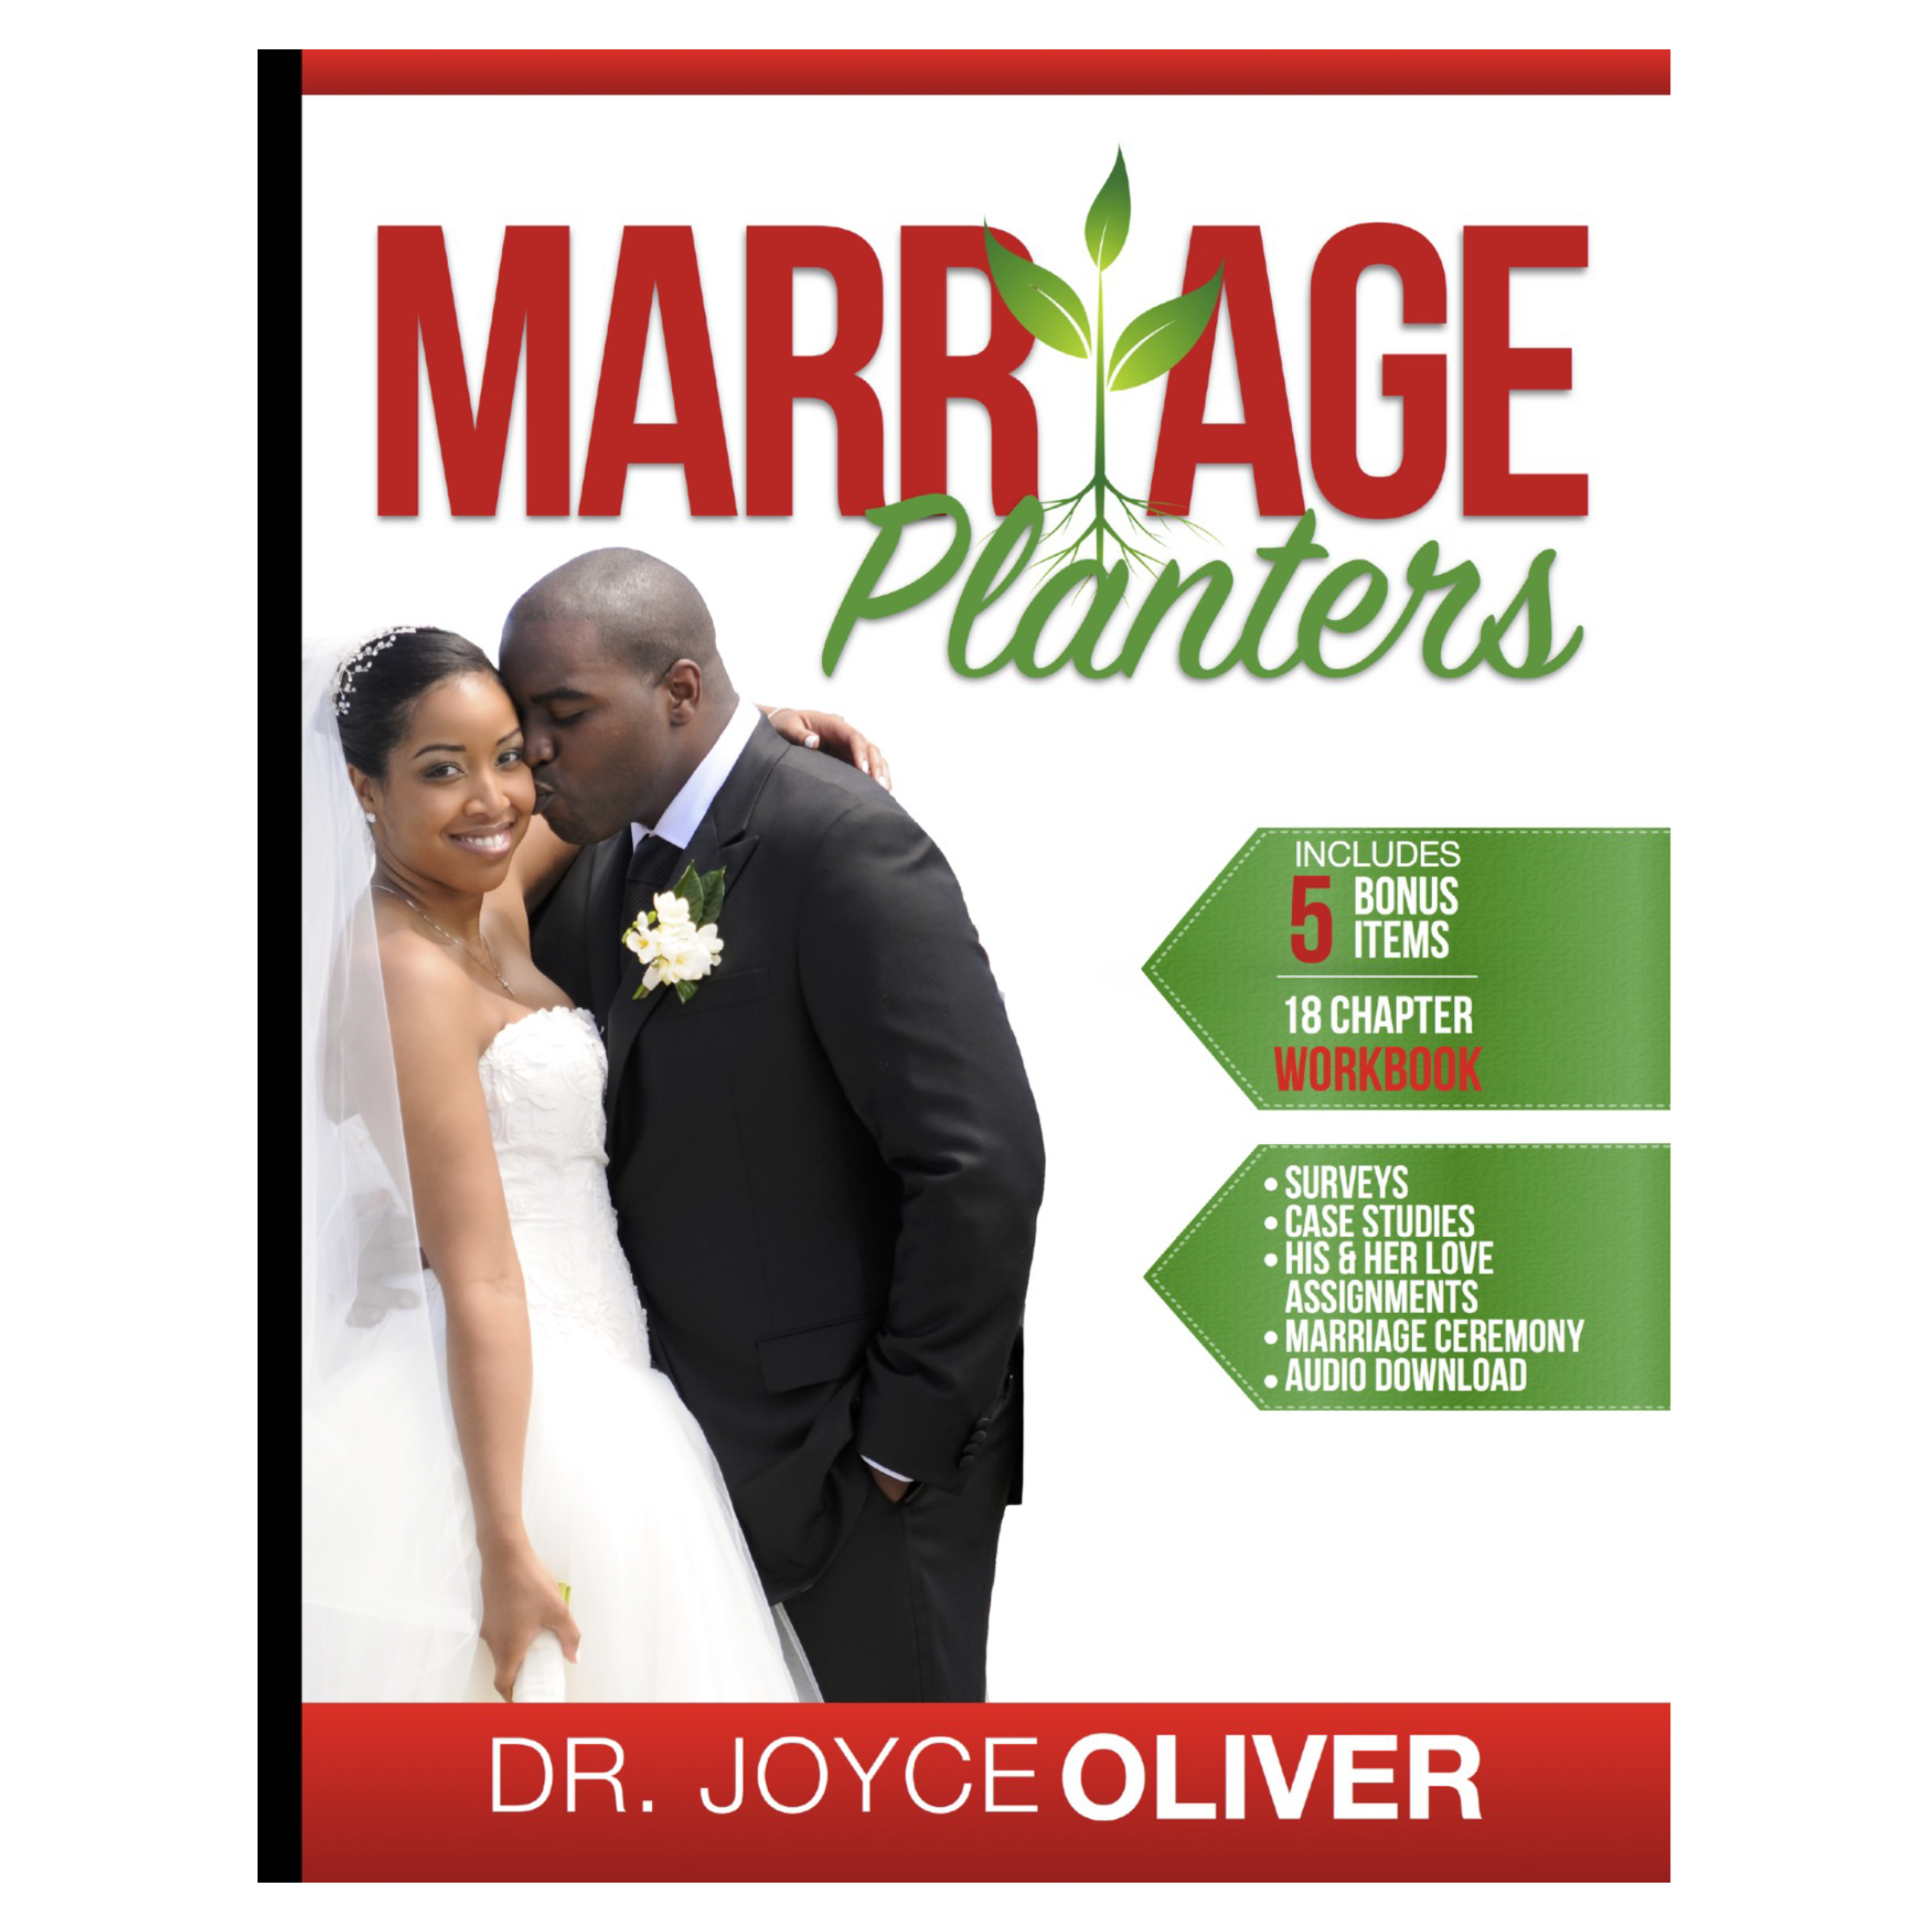 Marriage Planters - Ebook